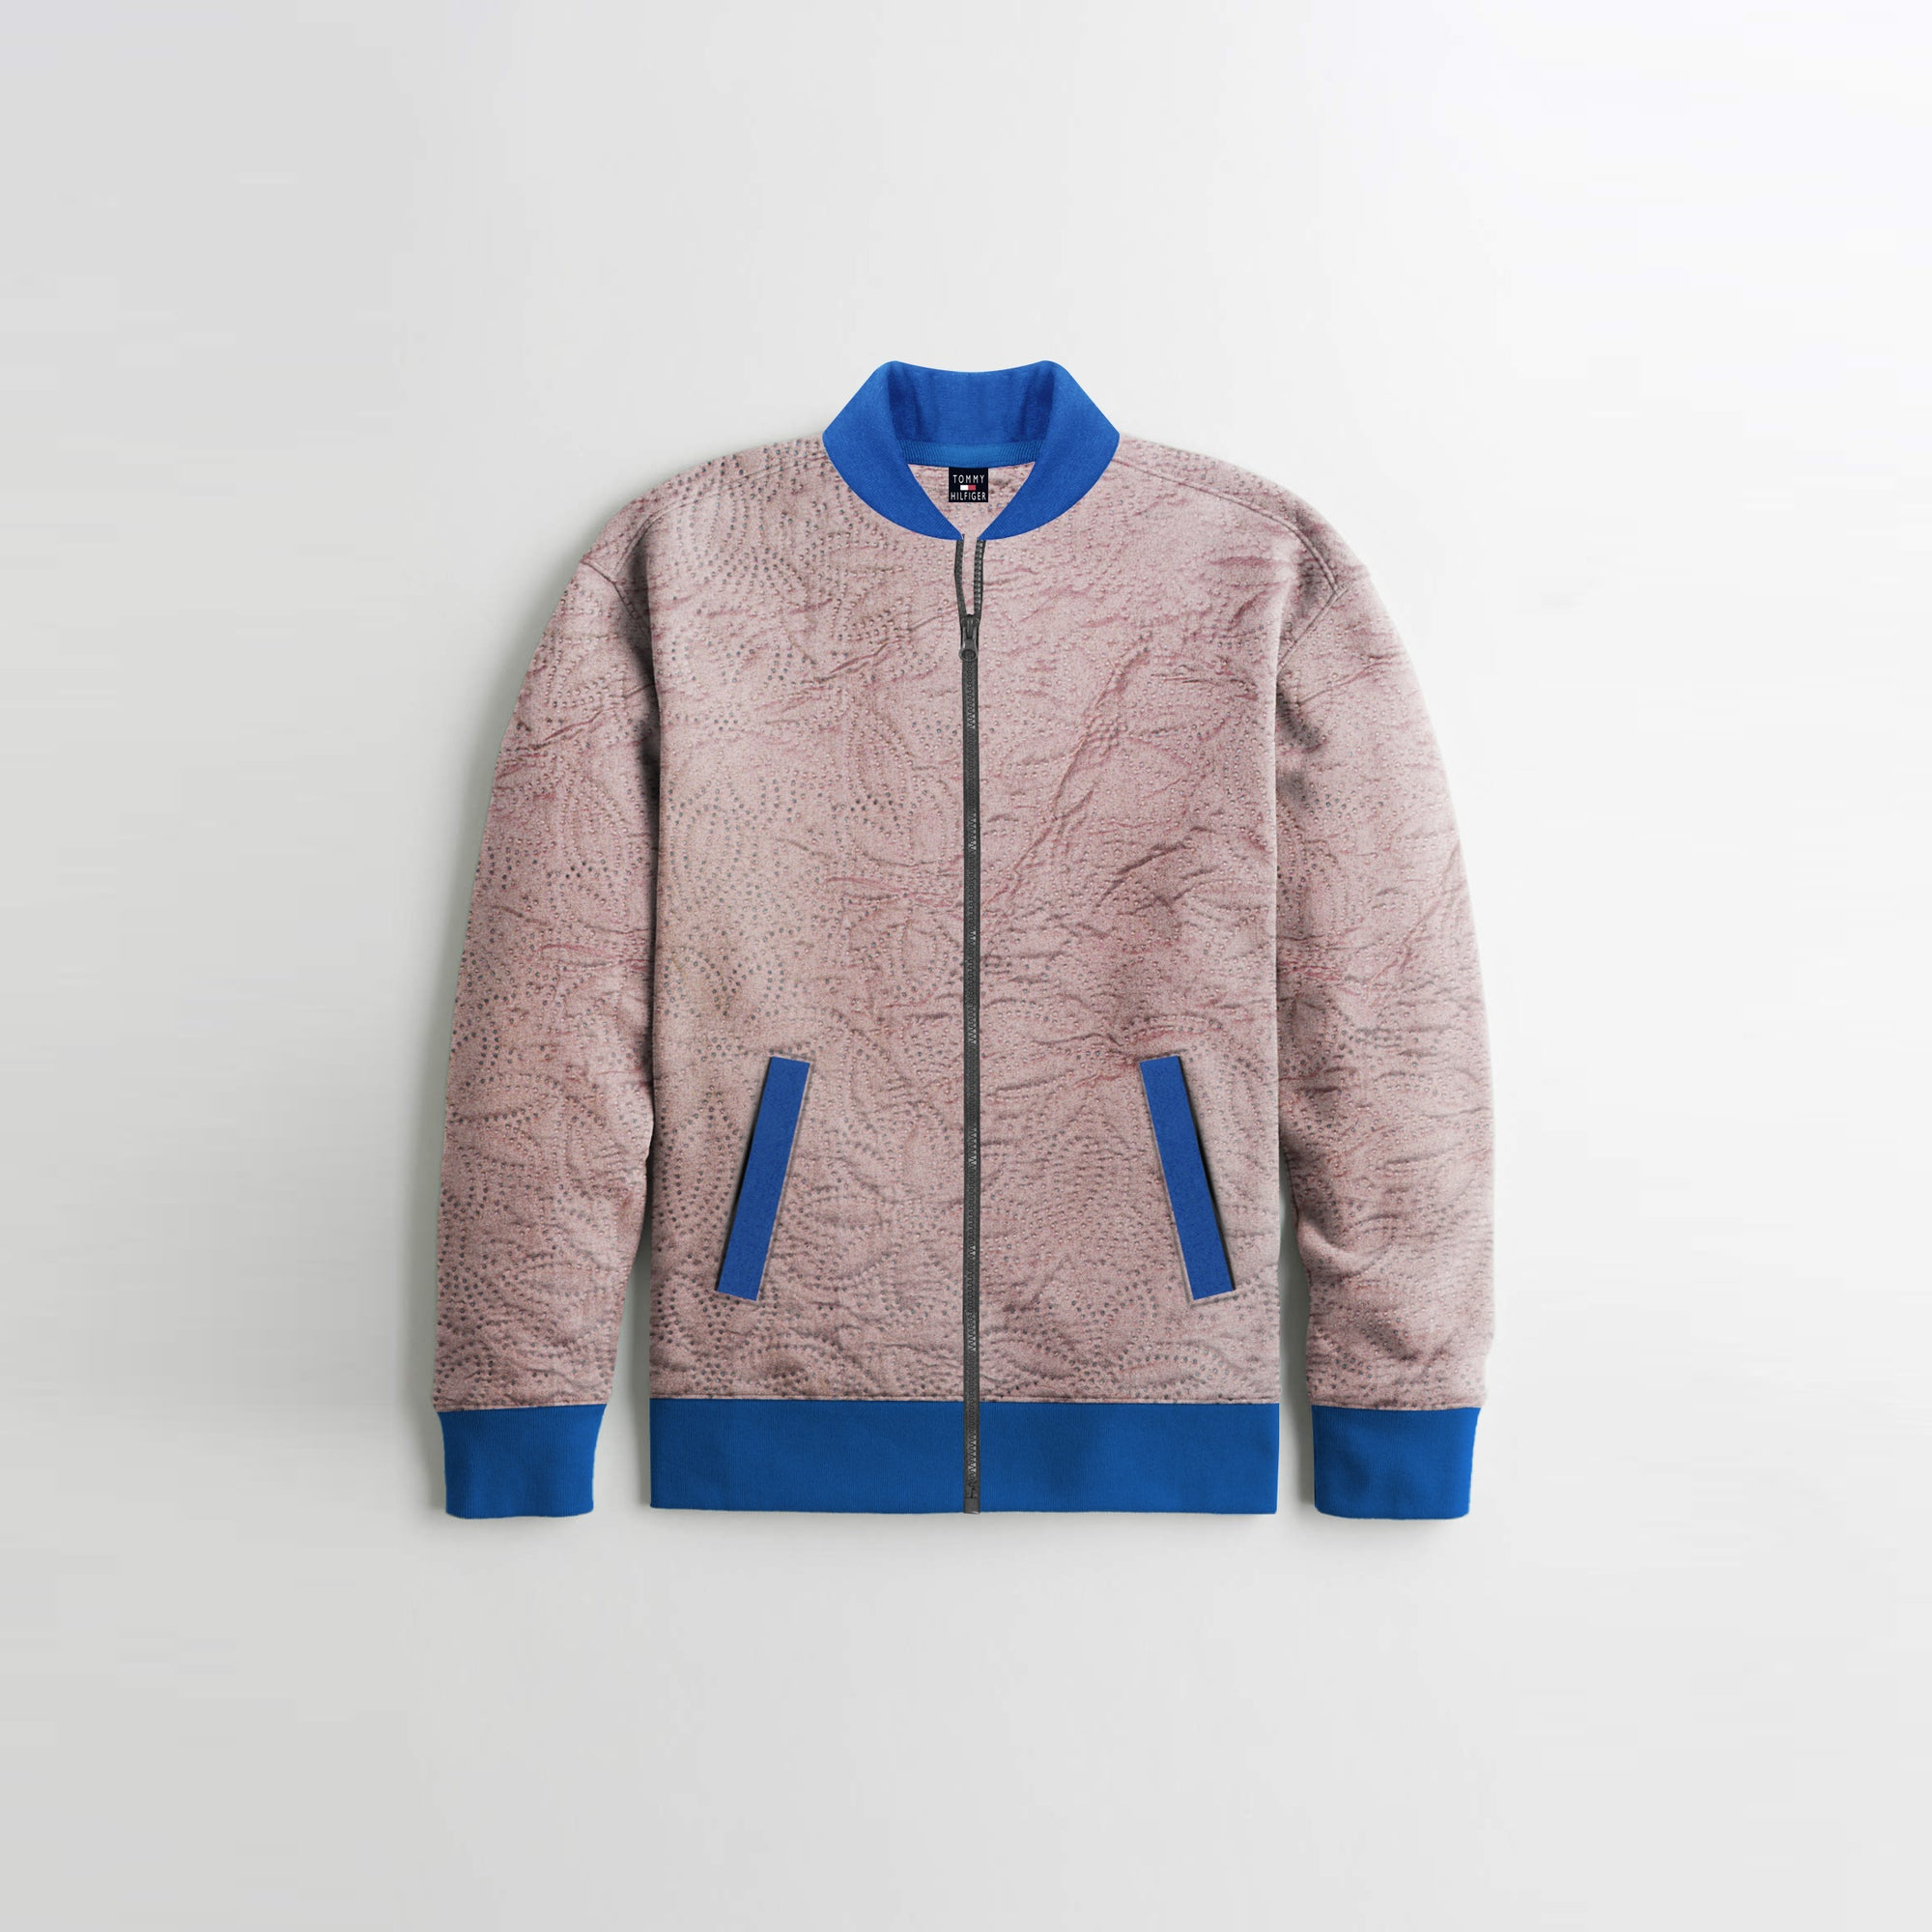 TH Quilted Zipper Baseball Jacket For Kids-Light Pink With Blue Contrast-NA12129